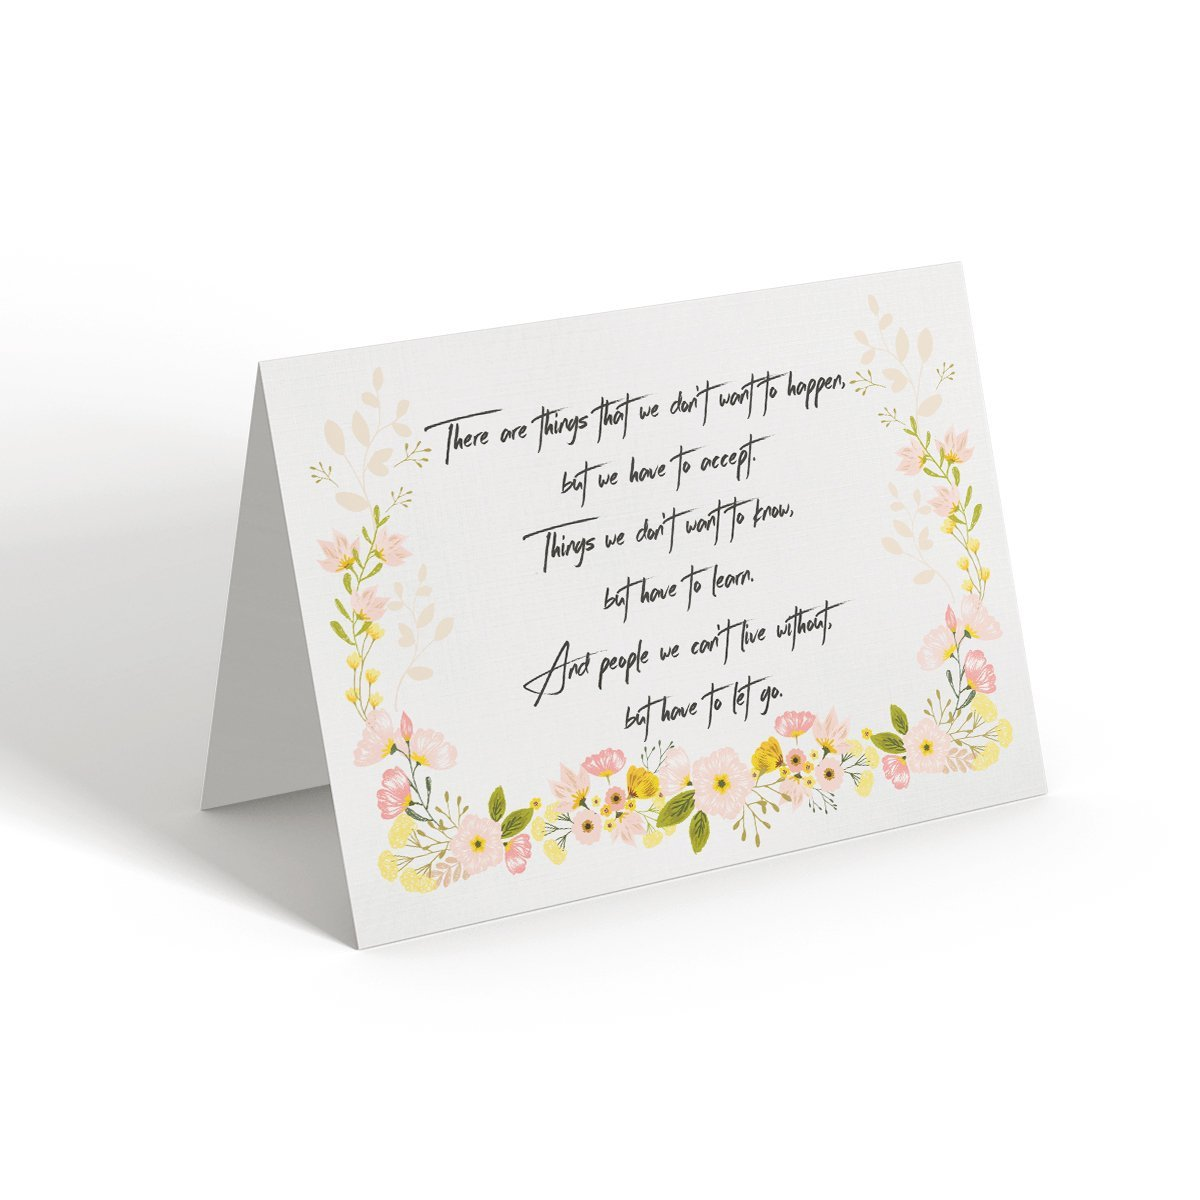 There are things that we don't want to happen - Greeting Card - Netties Expressions